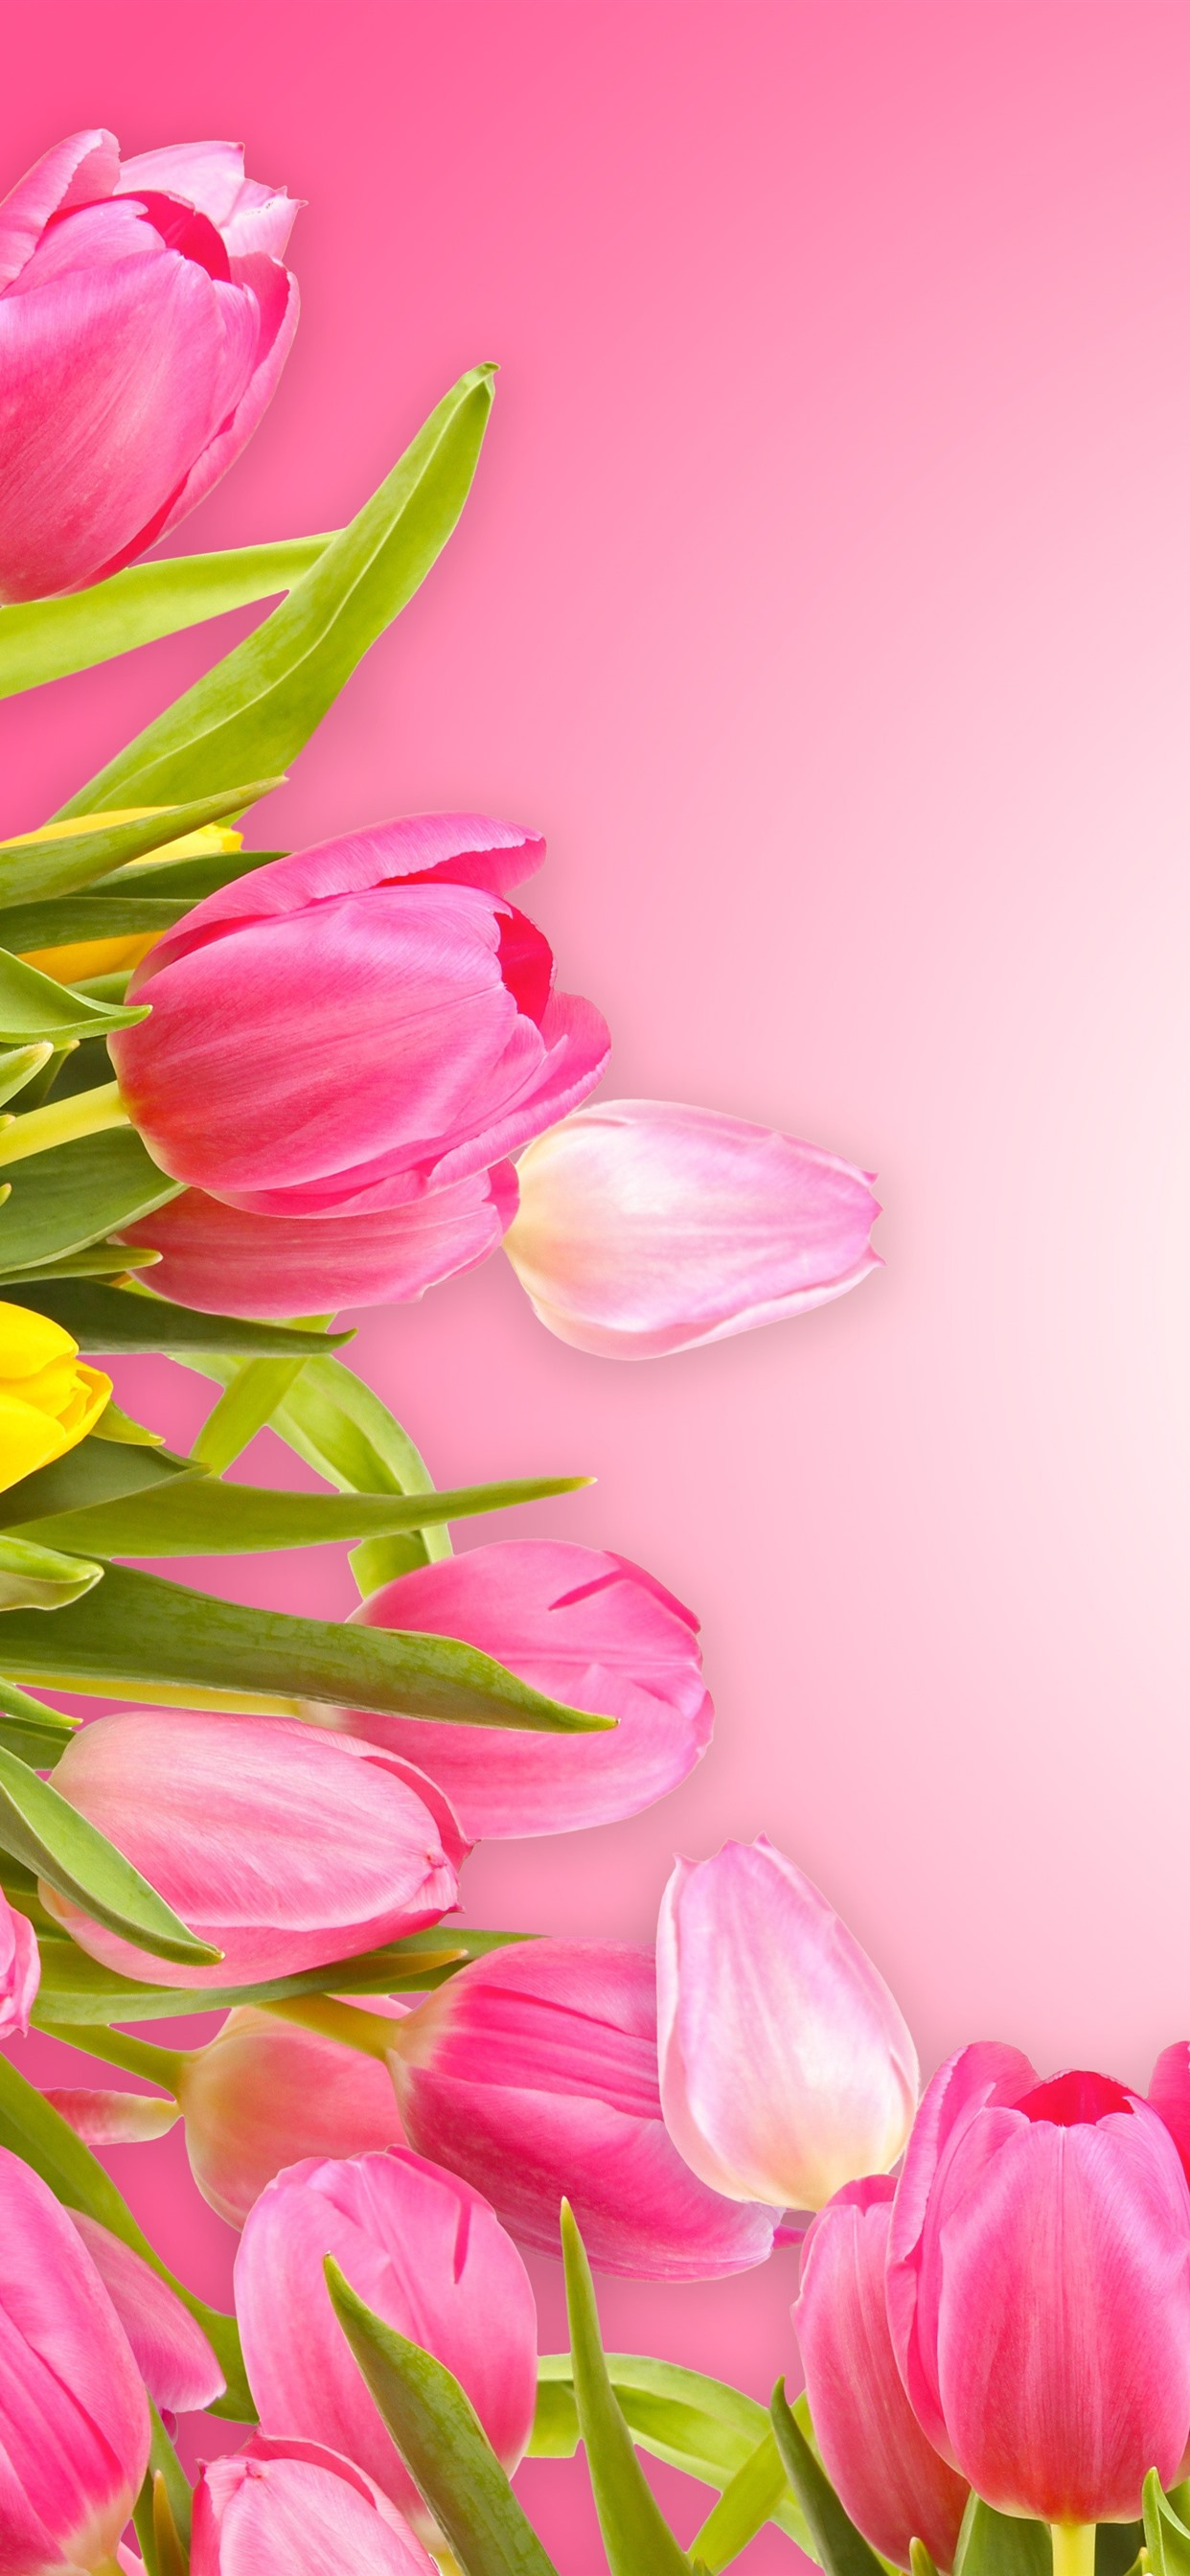 Iphone Wallpaper Pink Tulips Pink Background Tulips Background Hd 2420146 Hd Wallpaper Backgrounds Download